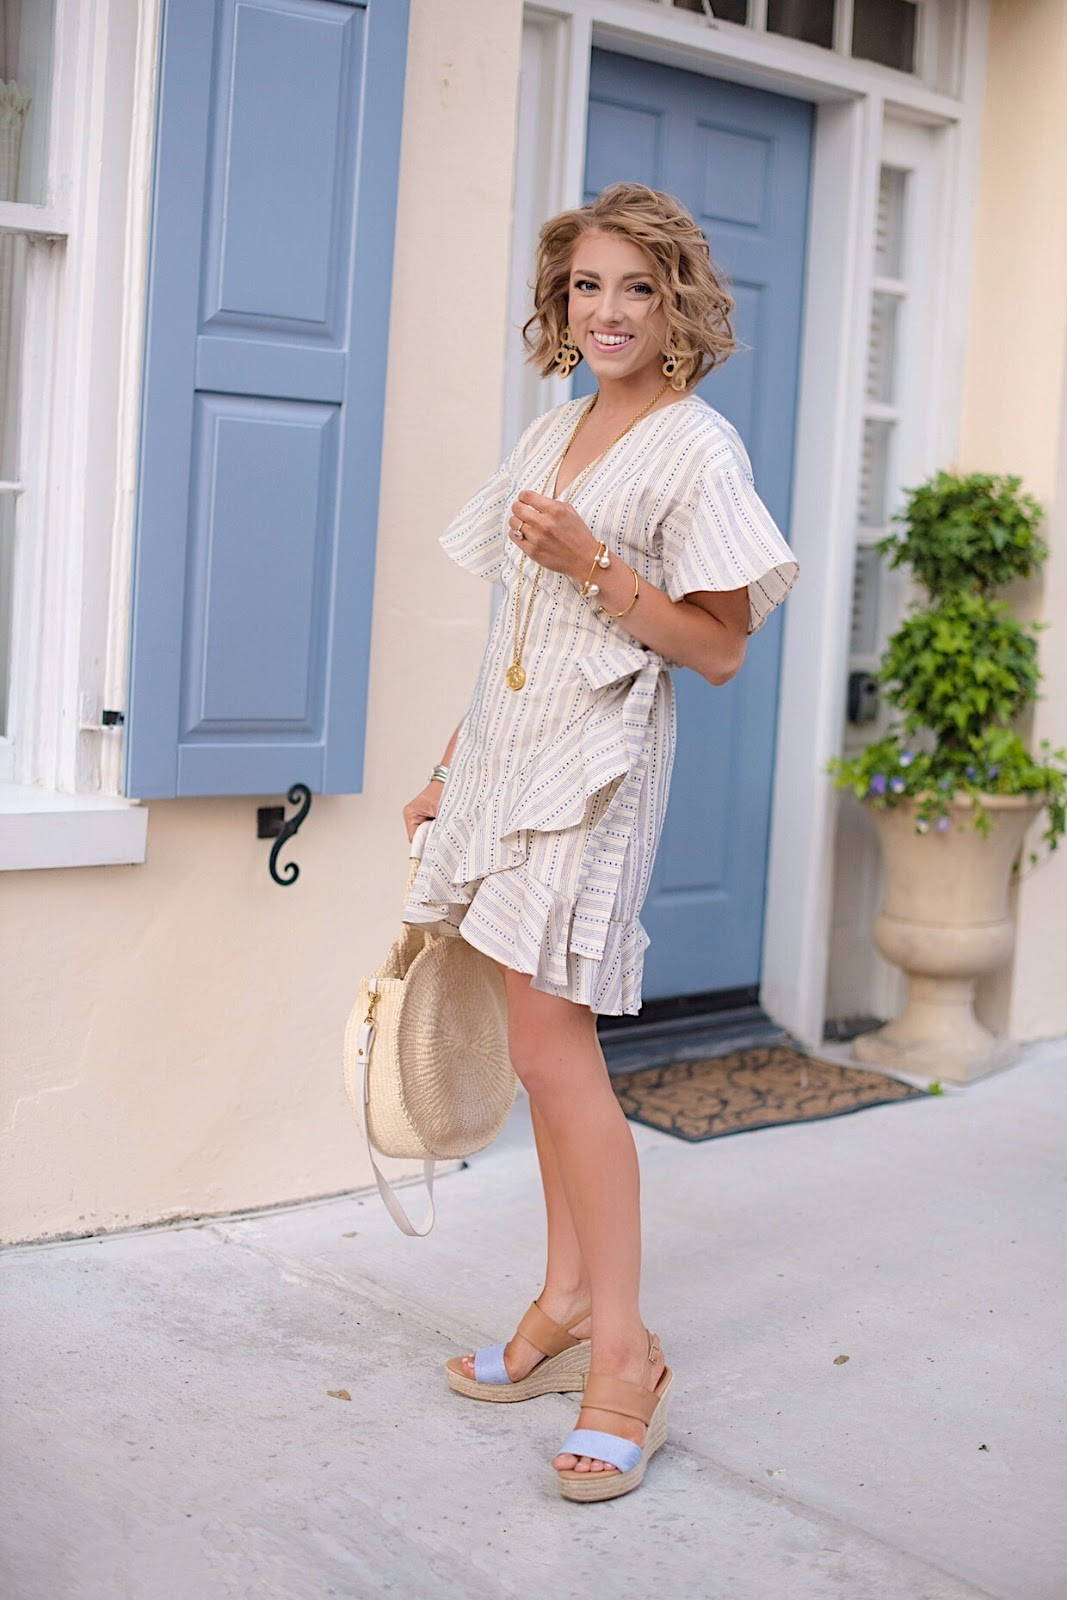 J.O.A. Wrap Dress (Under $90) - Something Delightful Blog